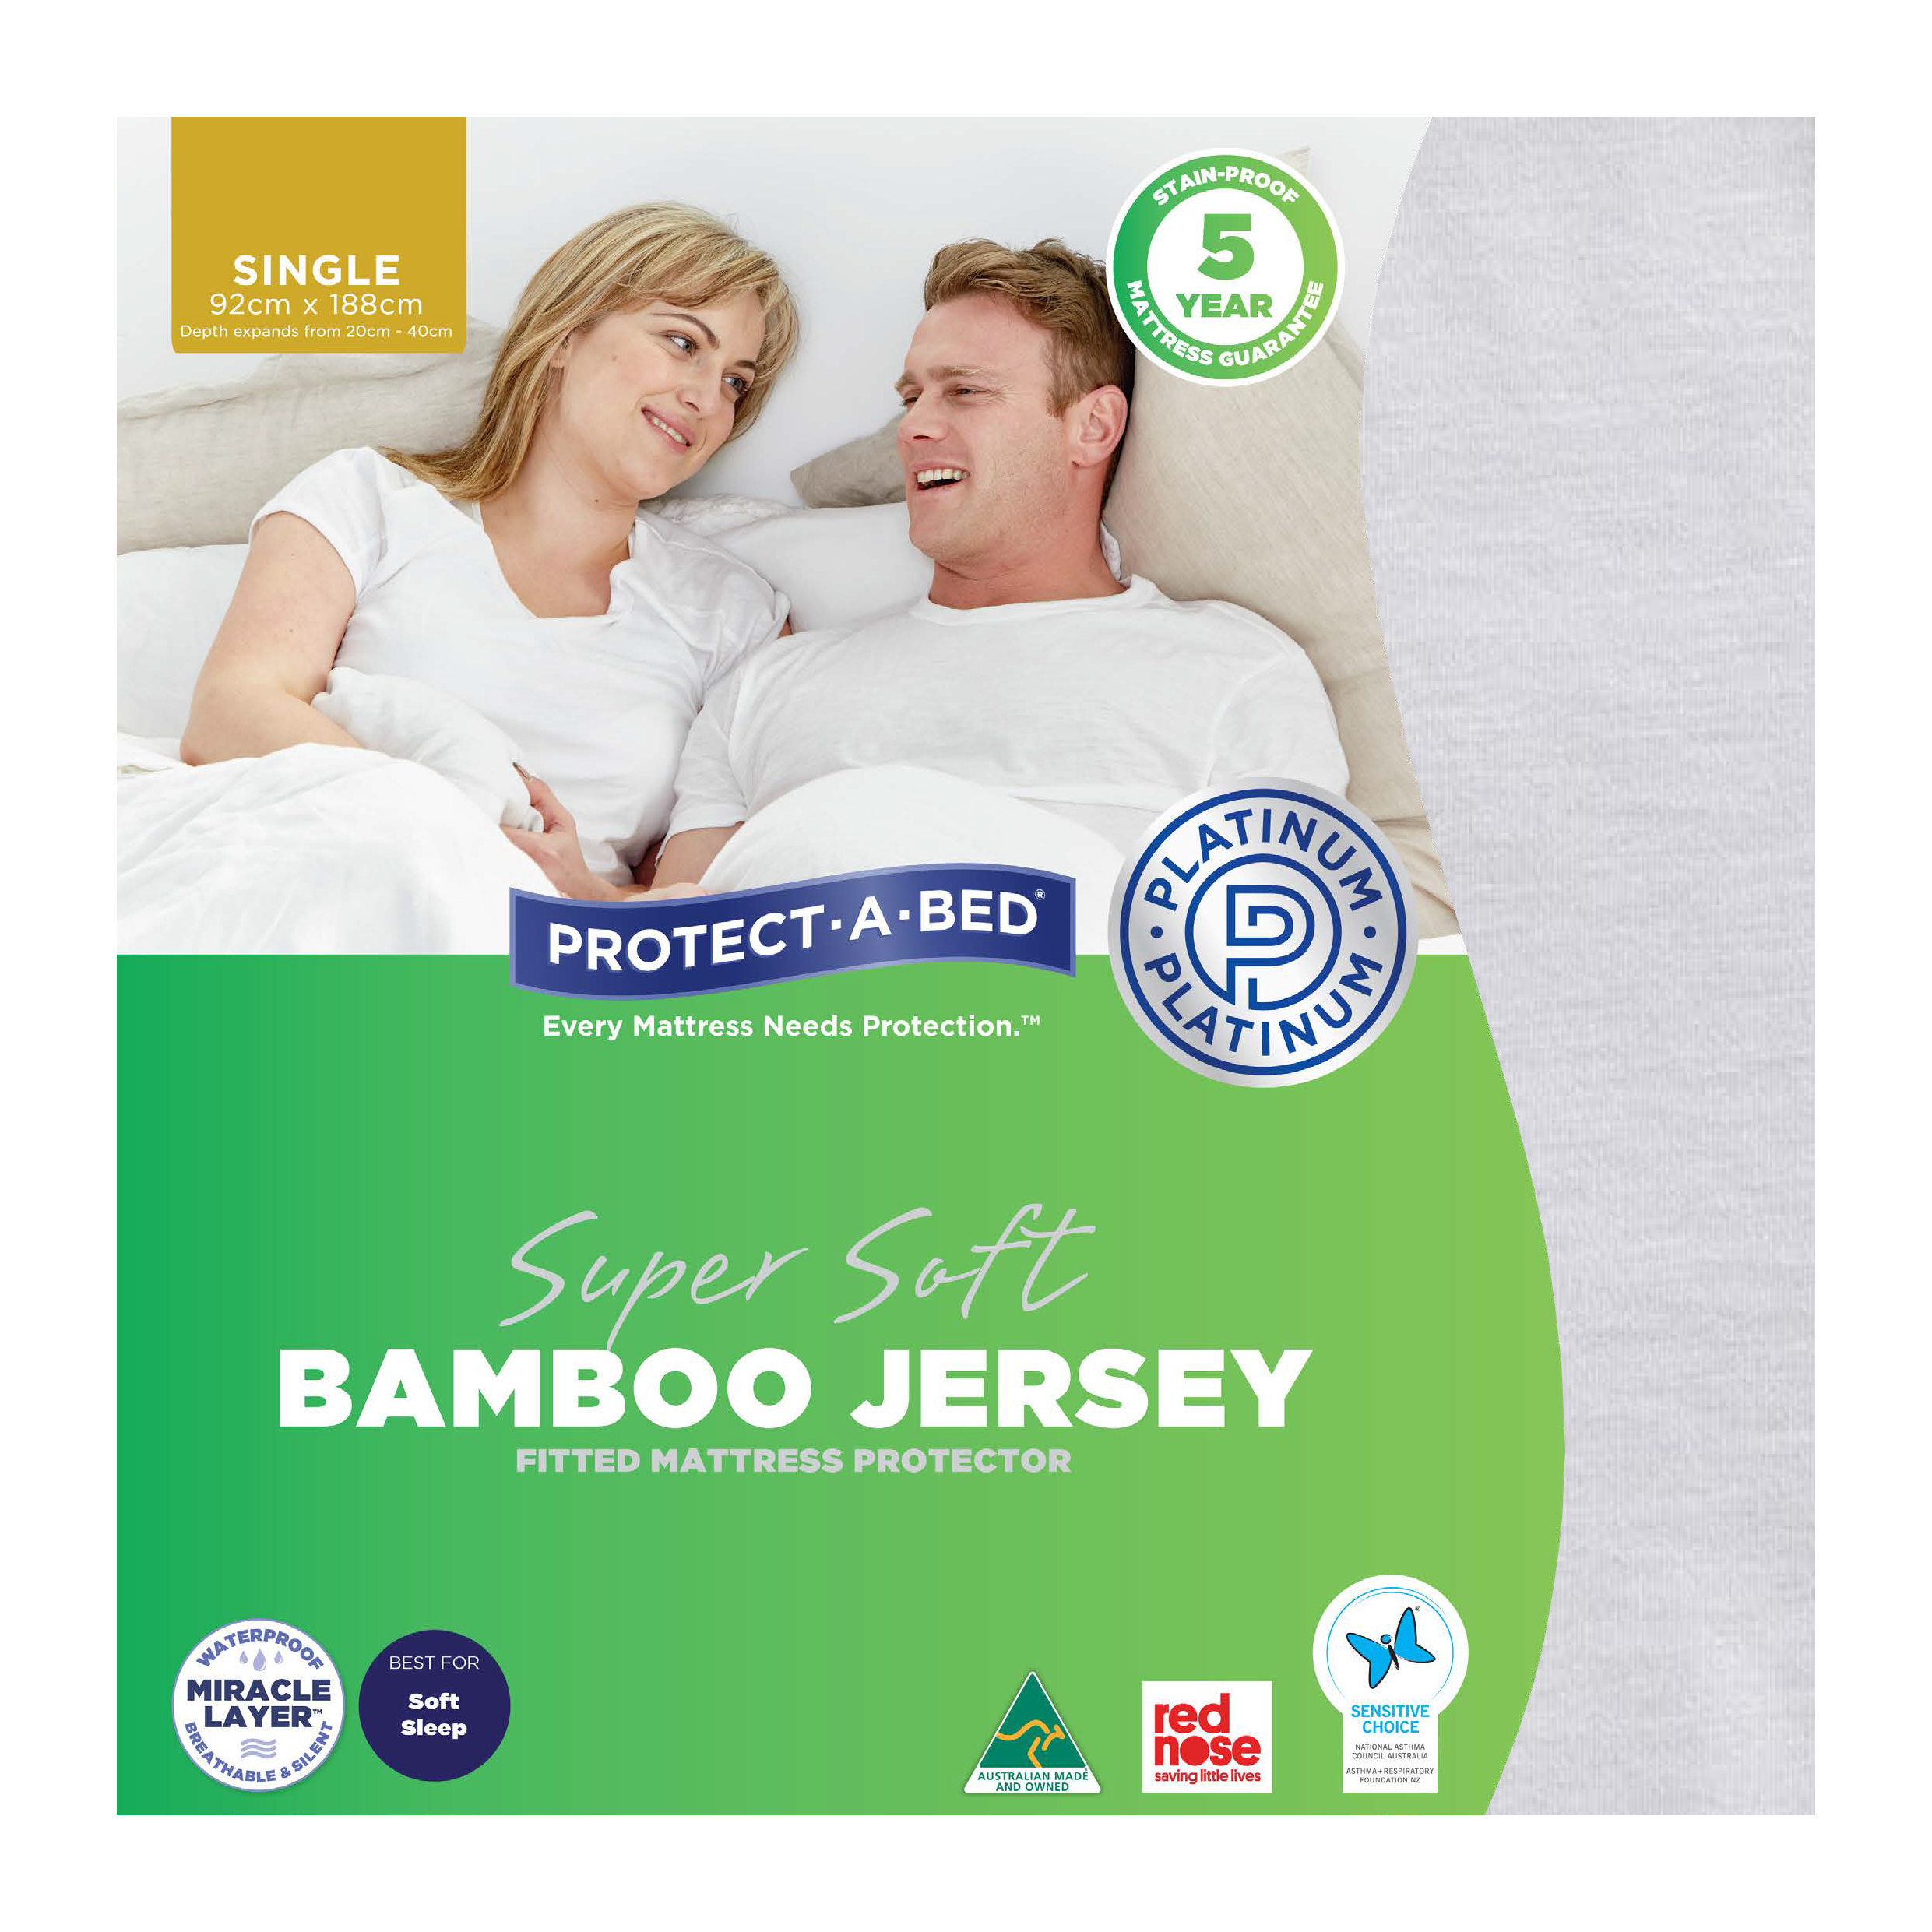 Protect-A-Bed Bamboo Jersey – Single Mattress Protector